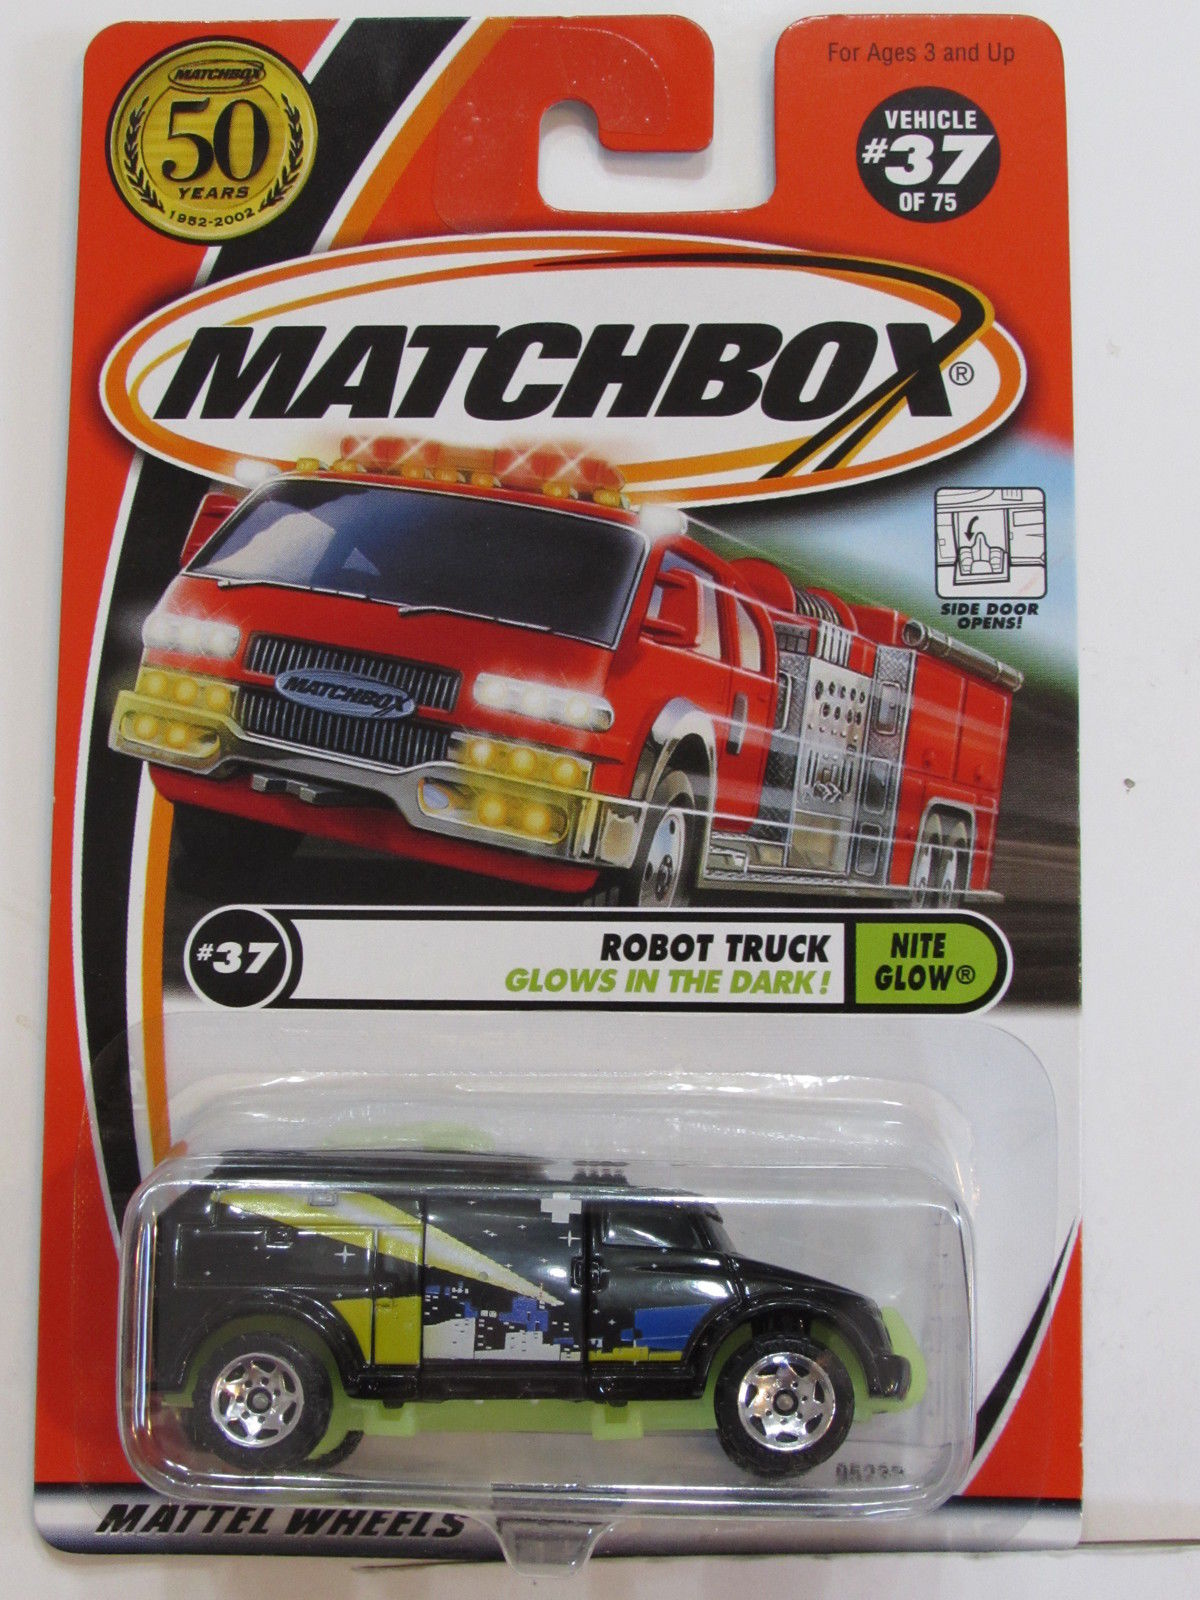 MATCHBOX 2001 #37 OF 75 ROBOT TRUCK - NITE GLOW